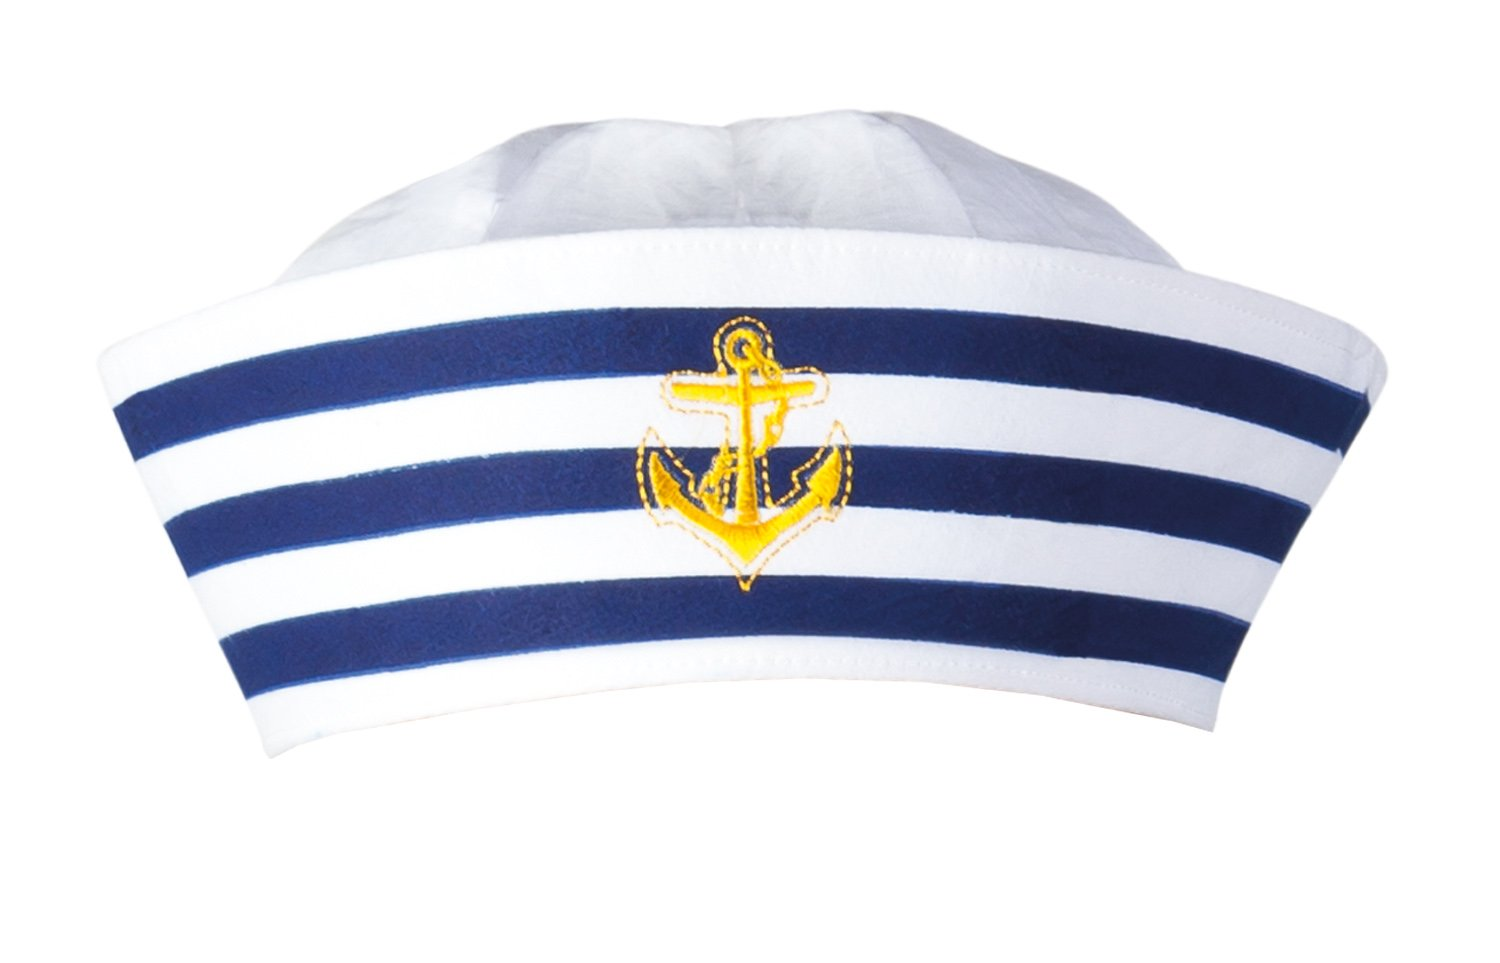 Hippie Hats,  70s Hats Boland BV Navy Sailor Doughboy Hat White/Navy $10.72 AT vintagedancer.com